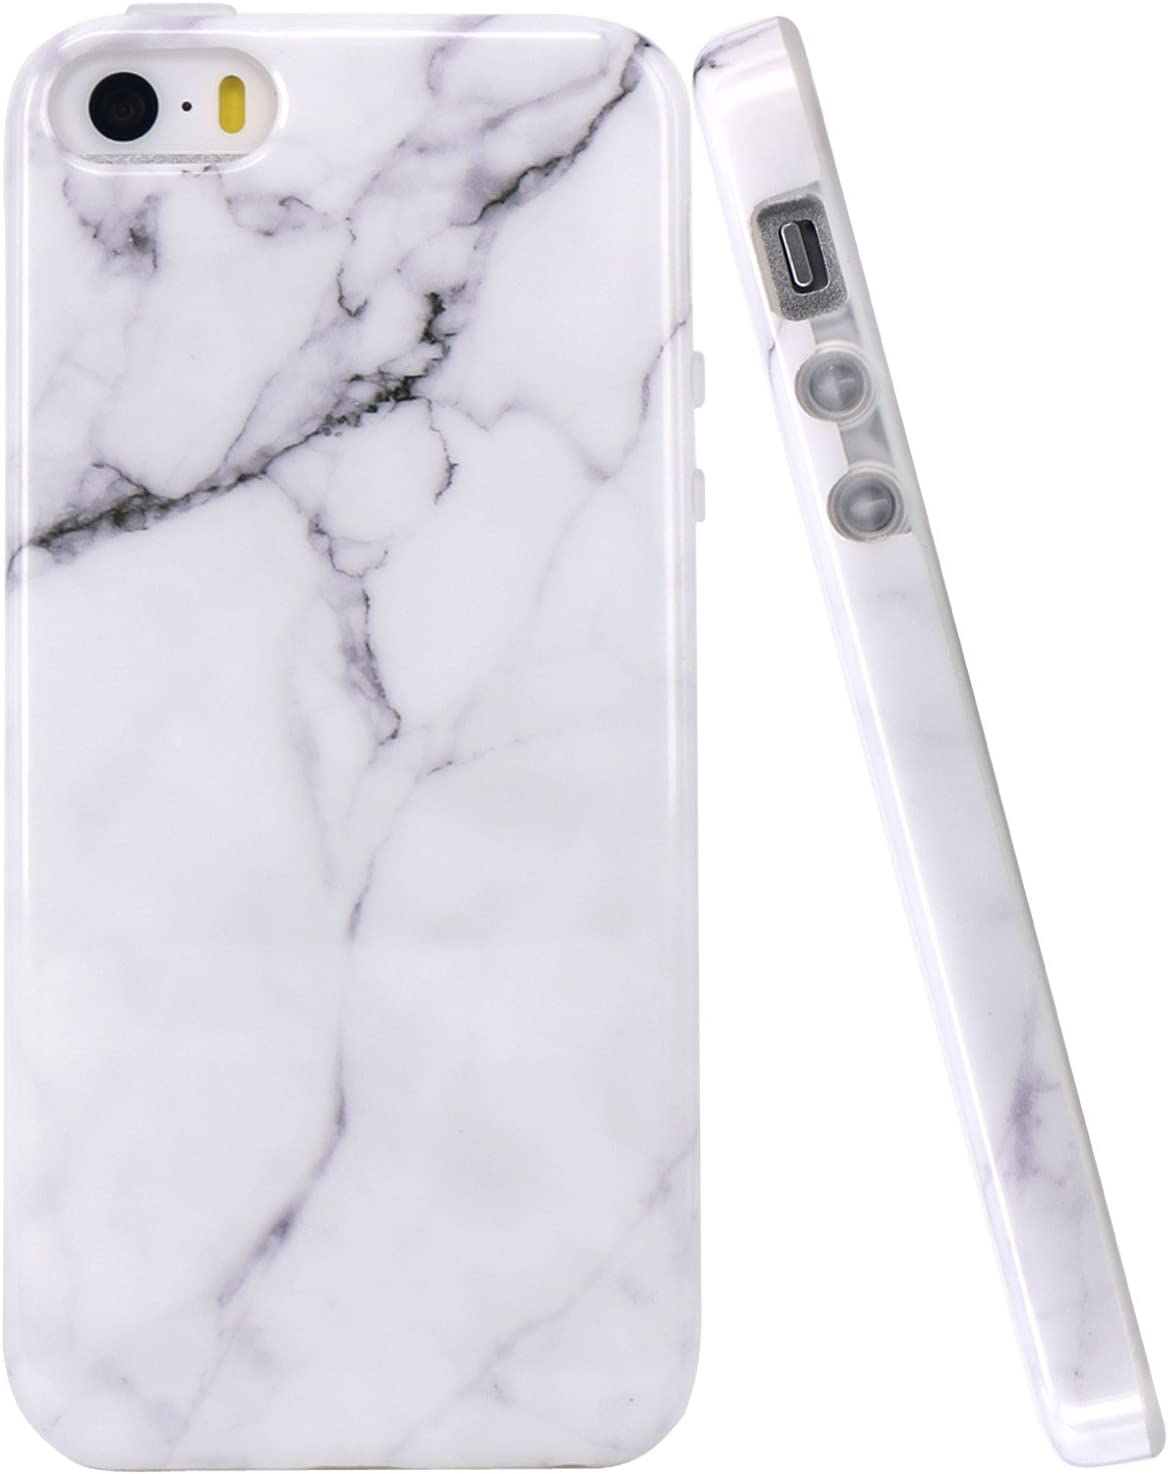 JAHOLAN iPhone 5 Case, iPhone 5S Case White Marble Design Slim Shockproof Clear Bumper TPU Soft Case Rubber Silicone Cover Phone Case for iPhone 5 5S SE